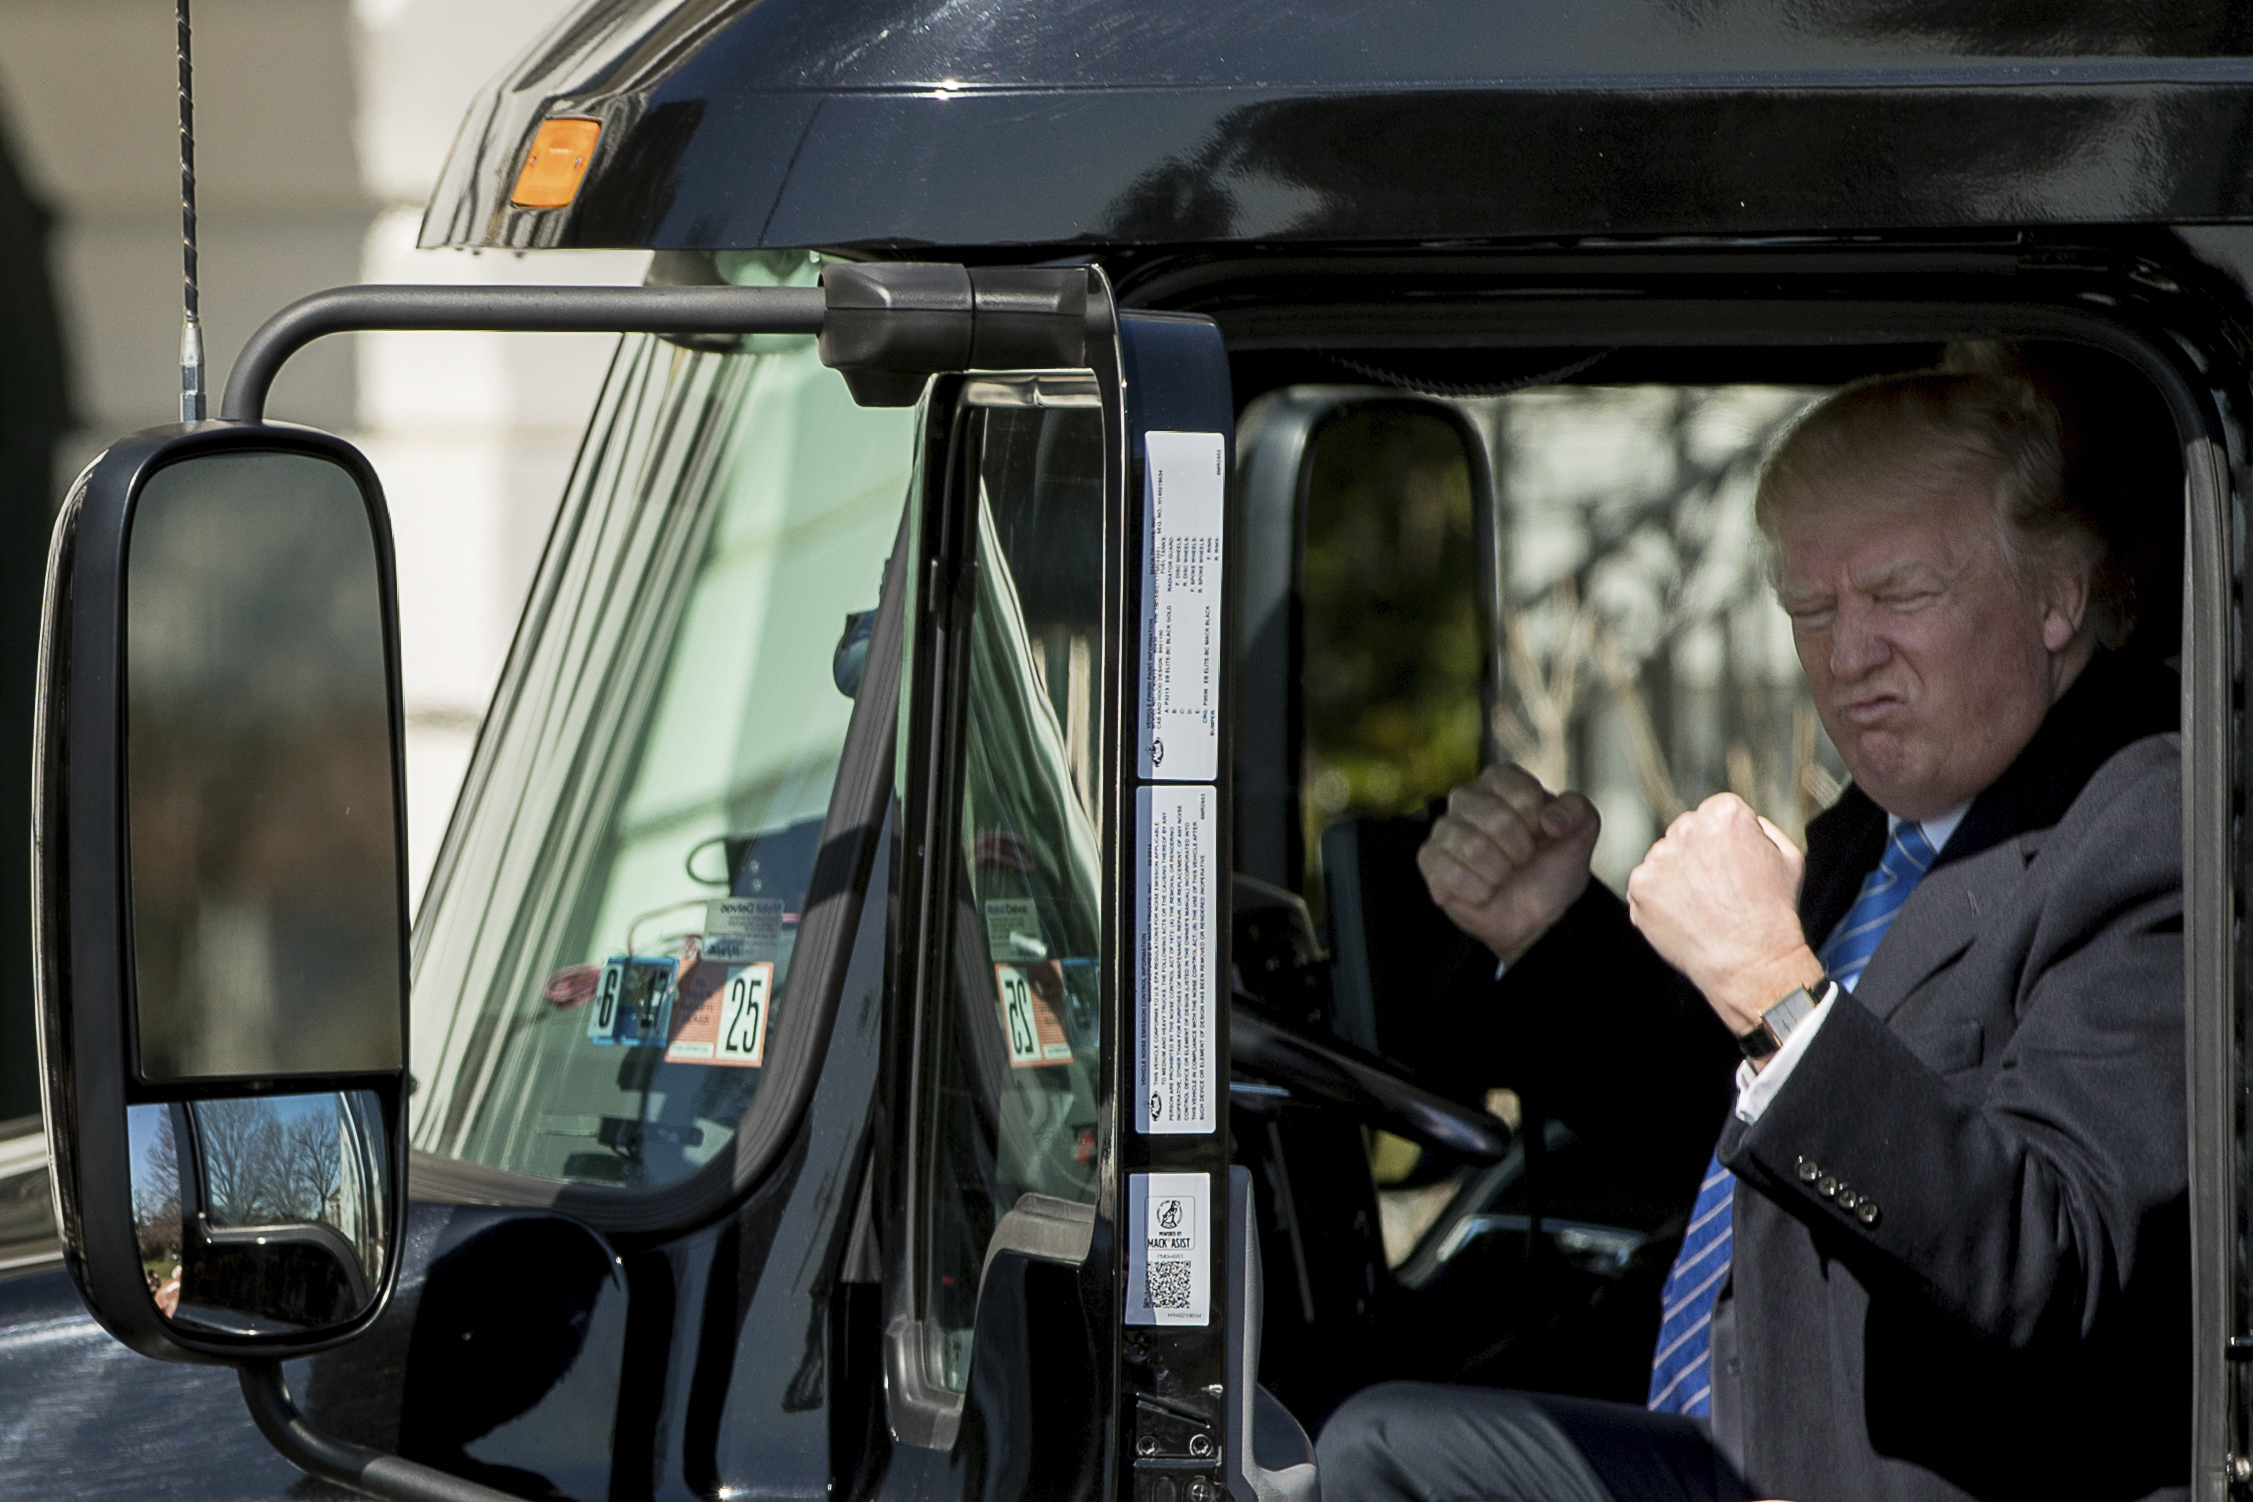 foto : andrew harnik : president donald trump gestures while sitting in an 18-wheeler truck while meeting with truckers and ceos regarding healthcare on the south lawn of the white house in washington, thursday, march 23, 2017. (ap photo/andrew harnik)